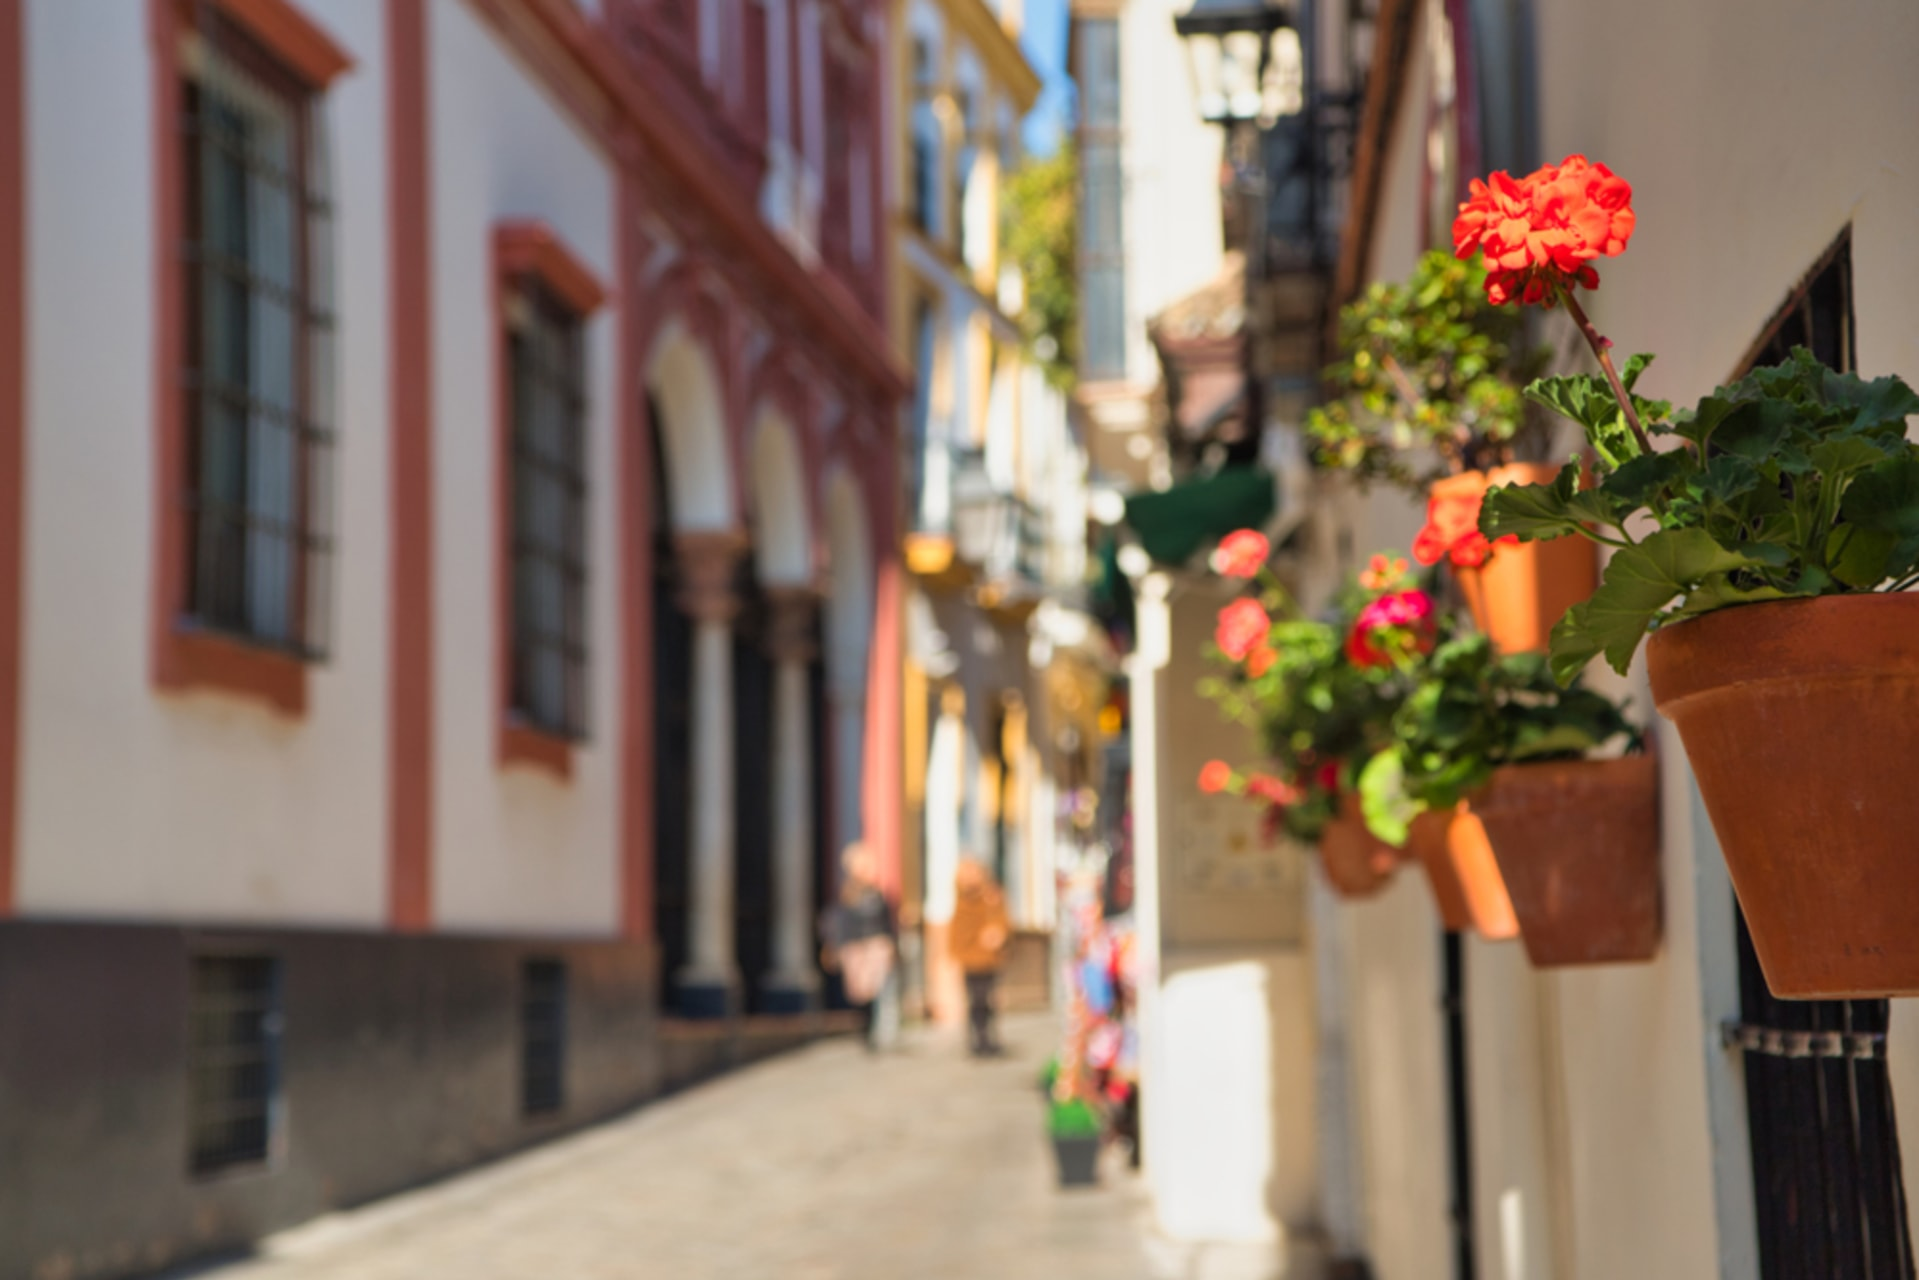 Seville - Romantic Seville: Love Stories and Passionate Tales